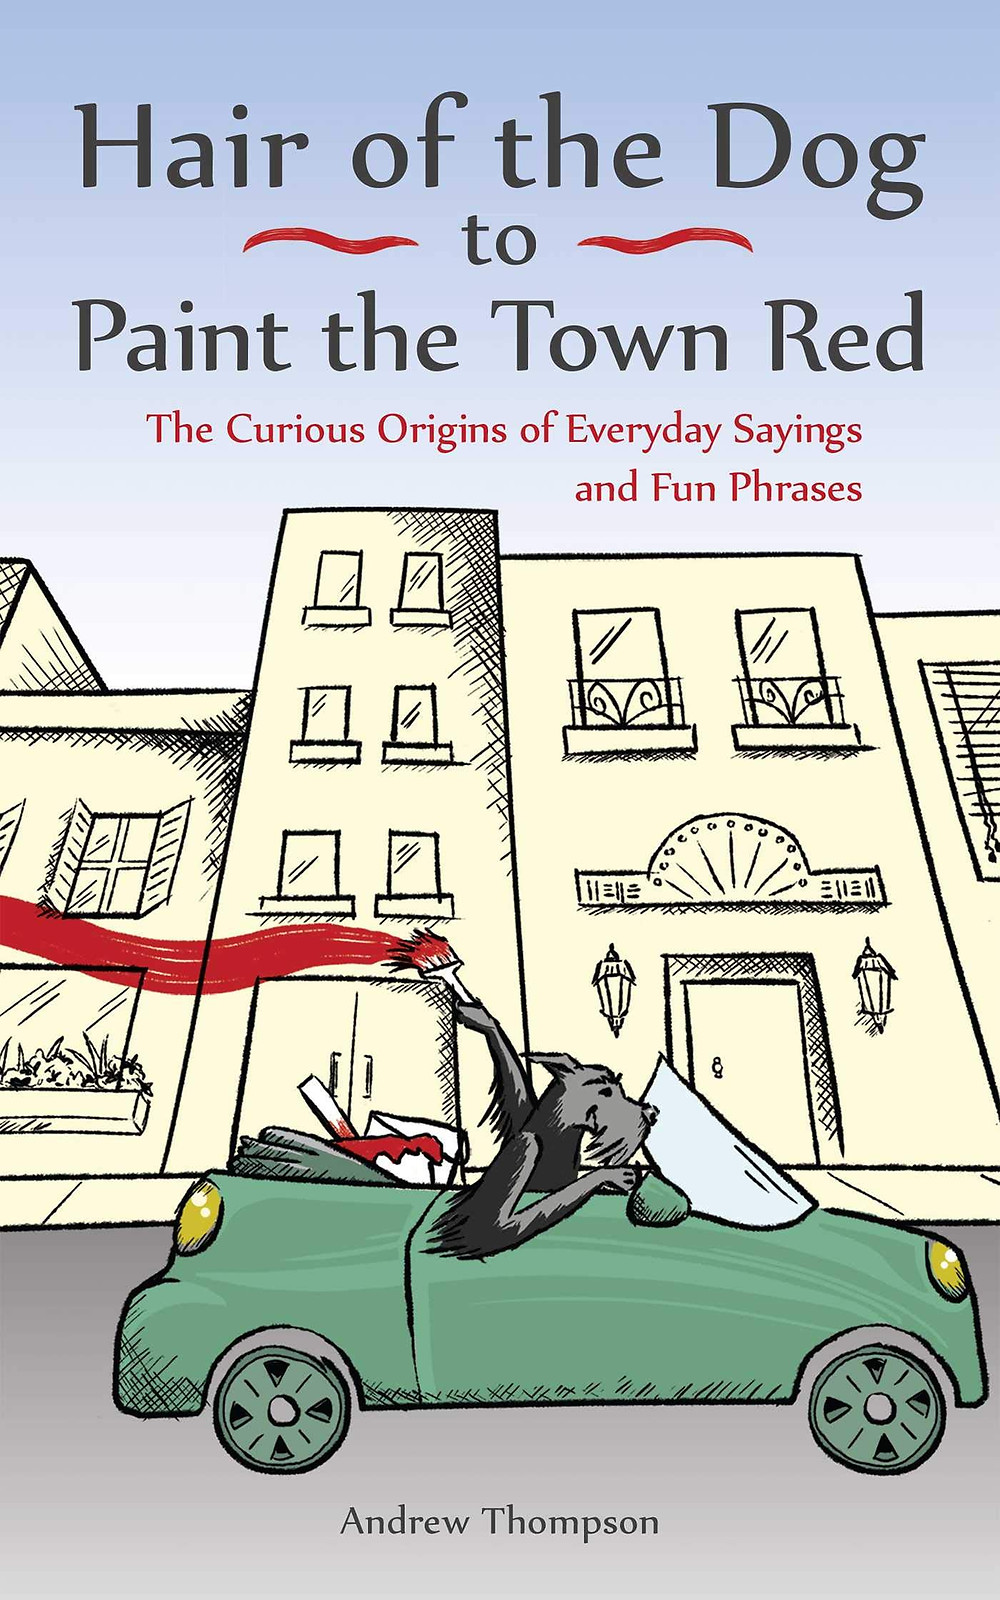 Hair of the dog to paint the town red - book